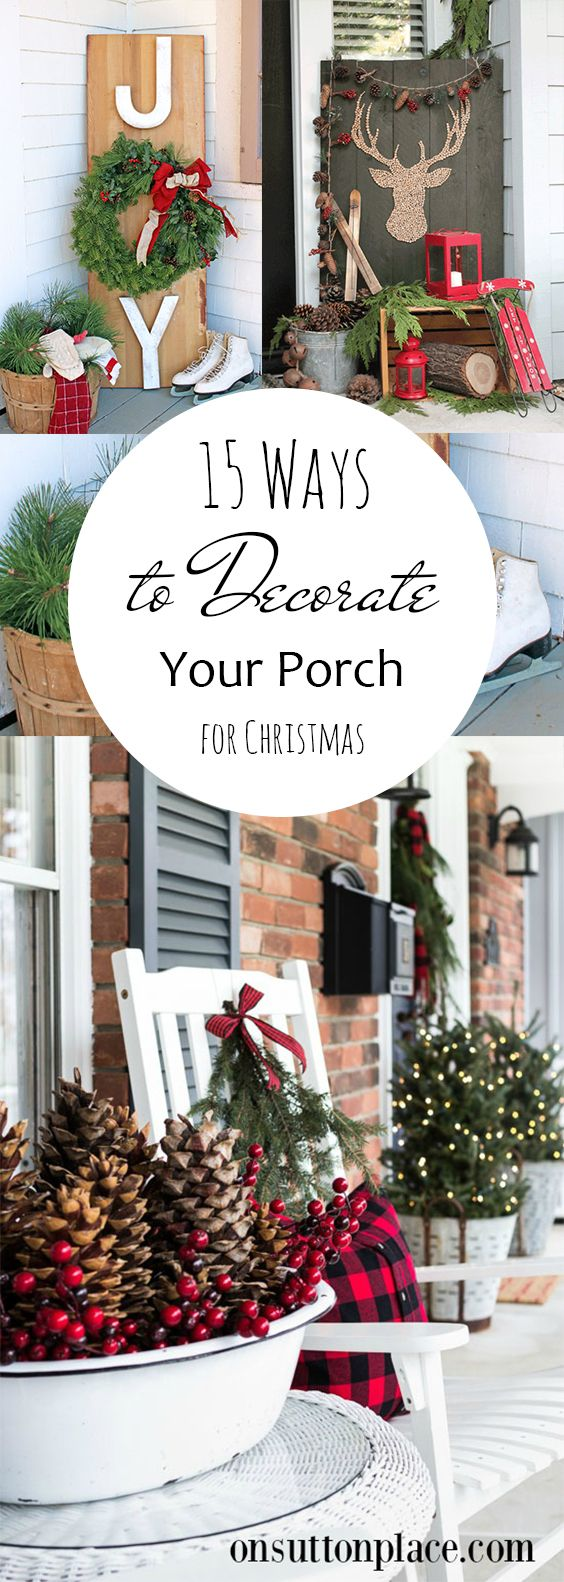 Porch Decor, Porch and Patio, Christmas Curb Appeal, Holiday Porch Ideas, Christmas Porch Decoration, Popular Pin, How to Decorate Your Porch, Christmas Porch